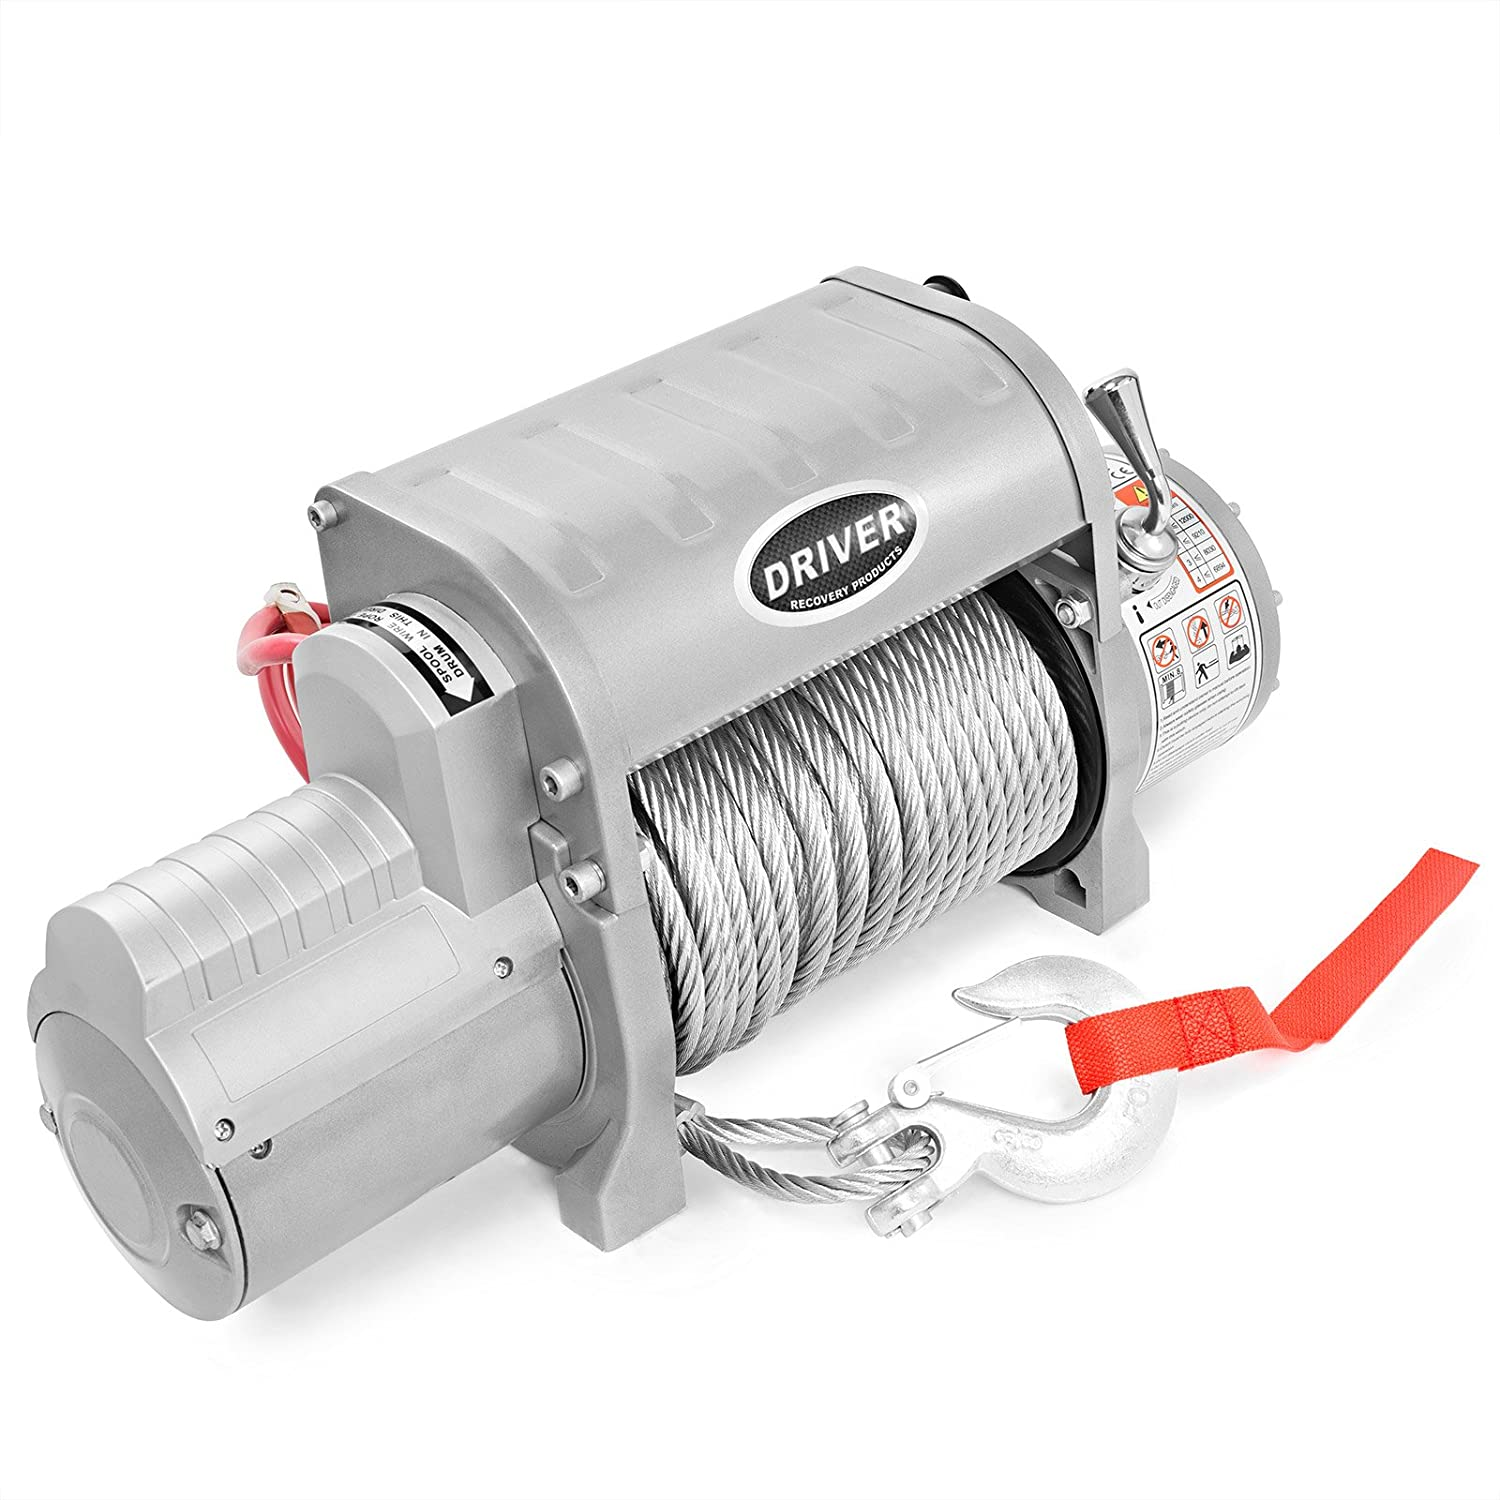 Ld12 Elite Electric Heavy Duty Recovery Winch 12000 Superwinch Solenoid Wiring Diagram 4000 Lbs Capacity Wireless Remote Control By Driver Products Automotive